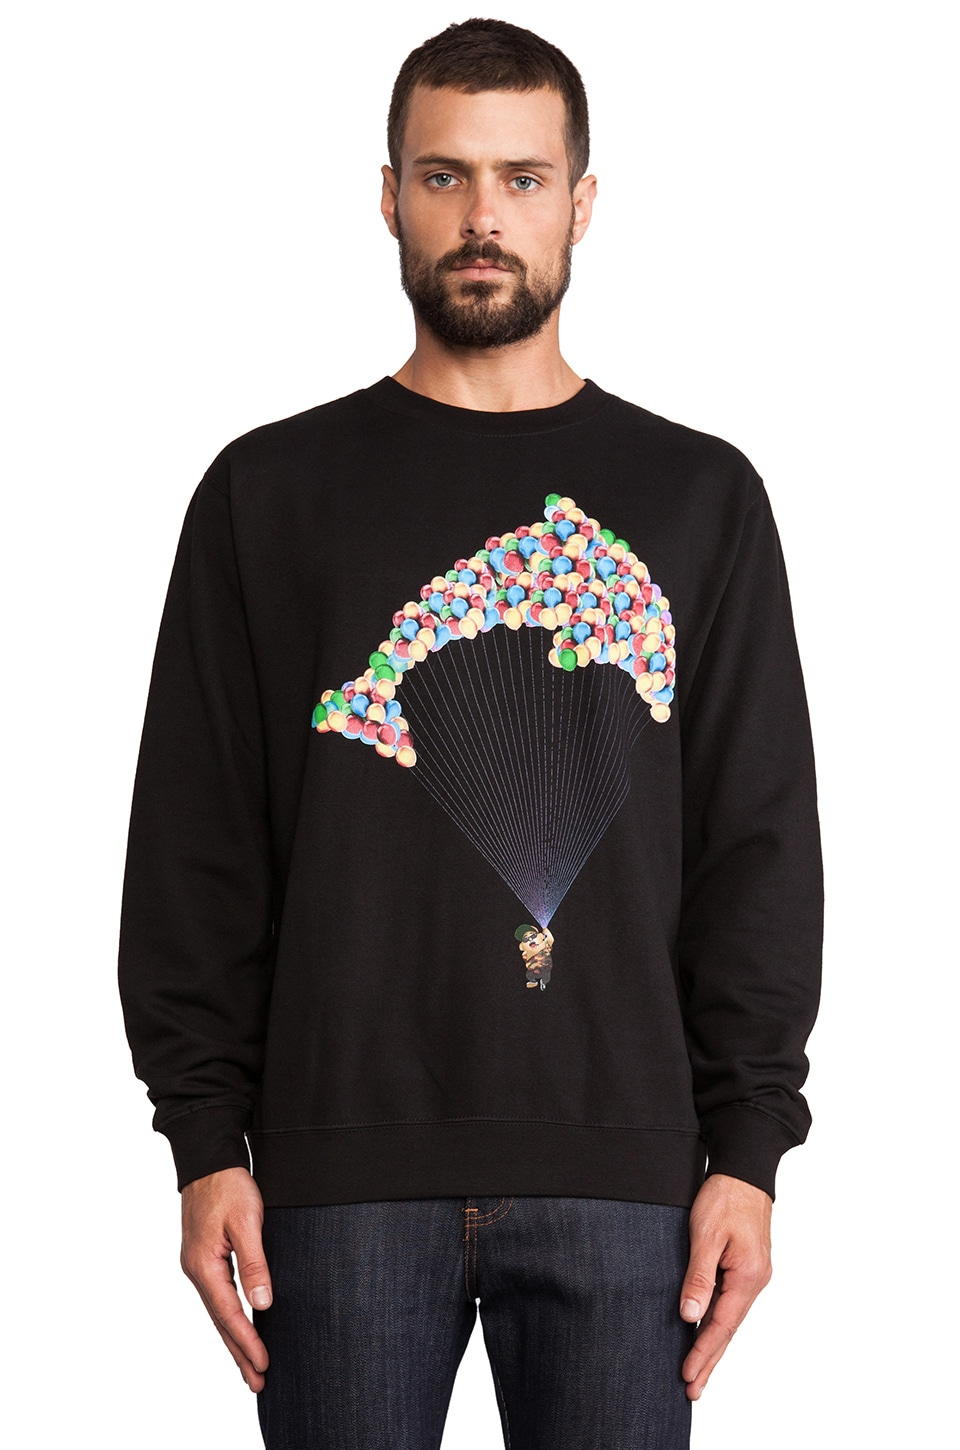 Odd Future Jasper Dolphin Crewneck in Black